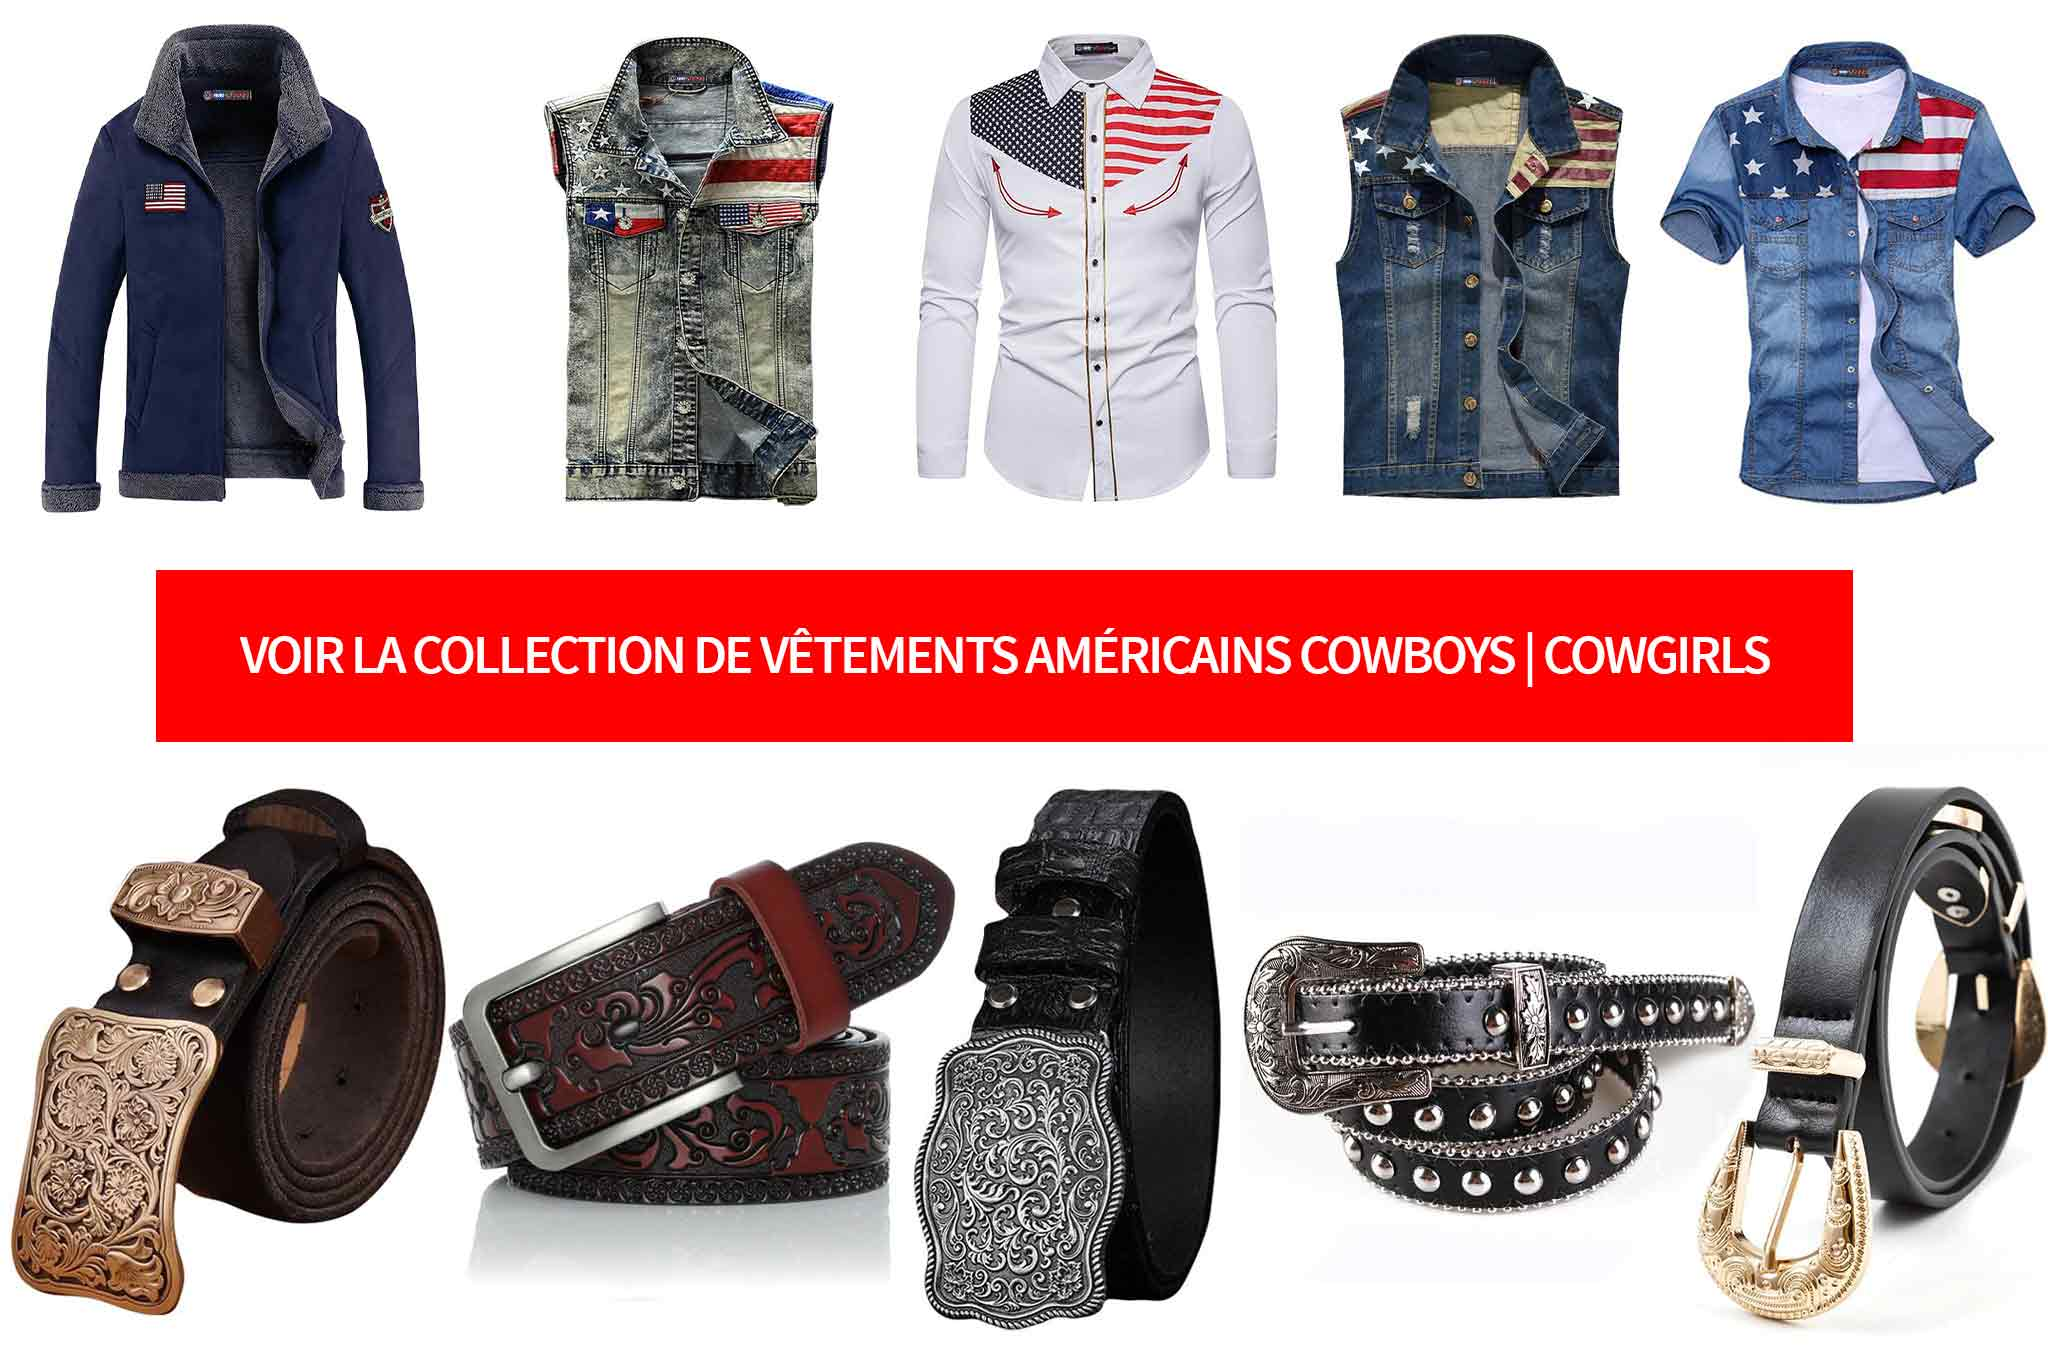 vetements americains style cowboy cowgirl